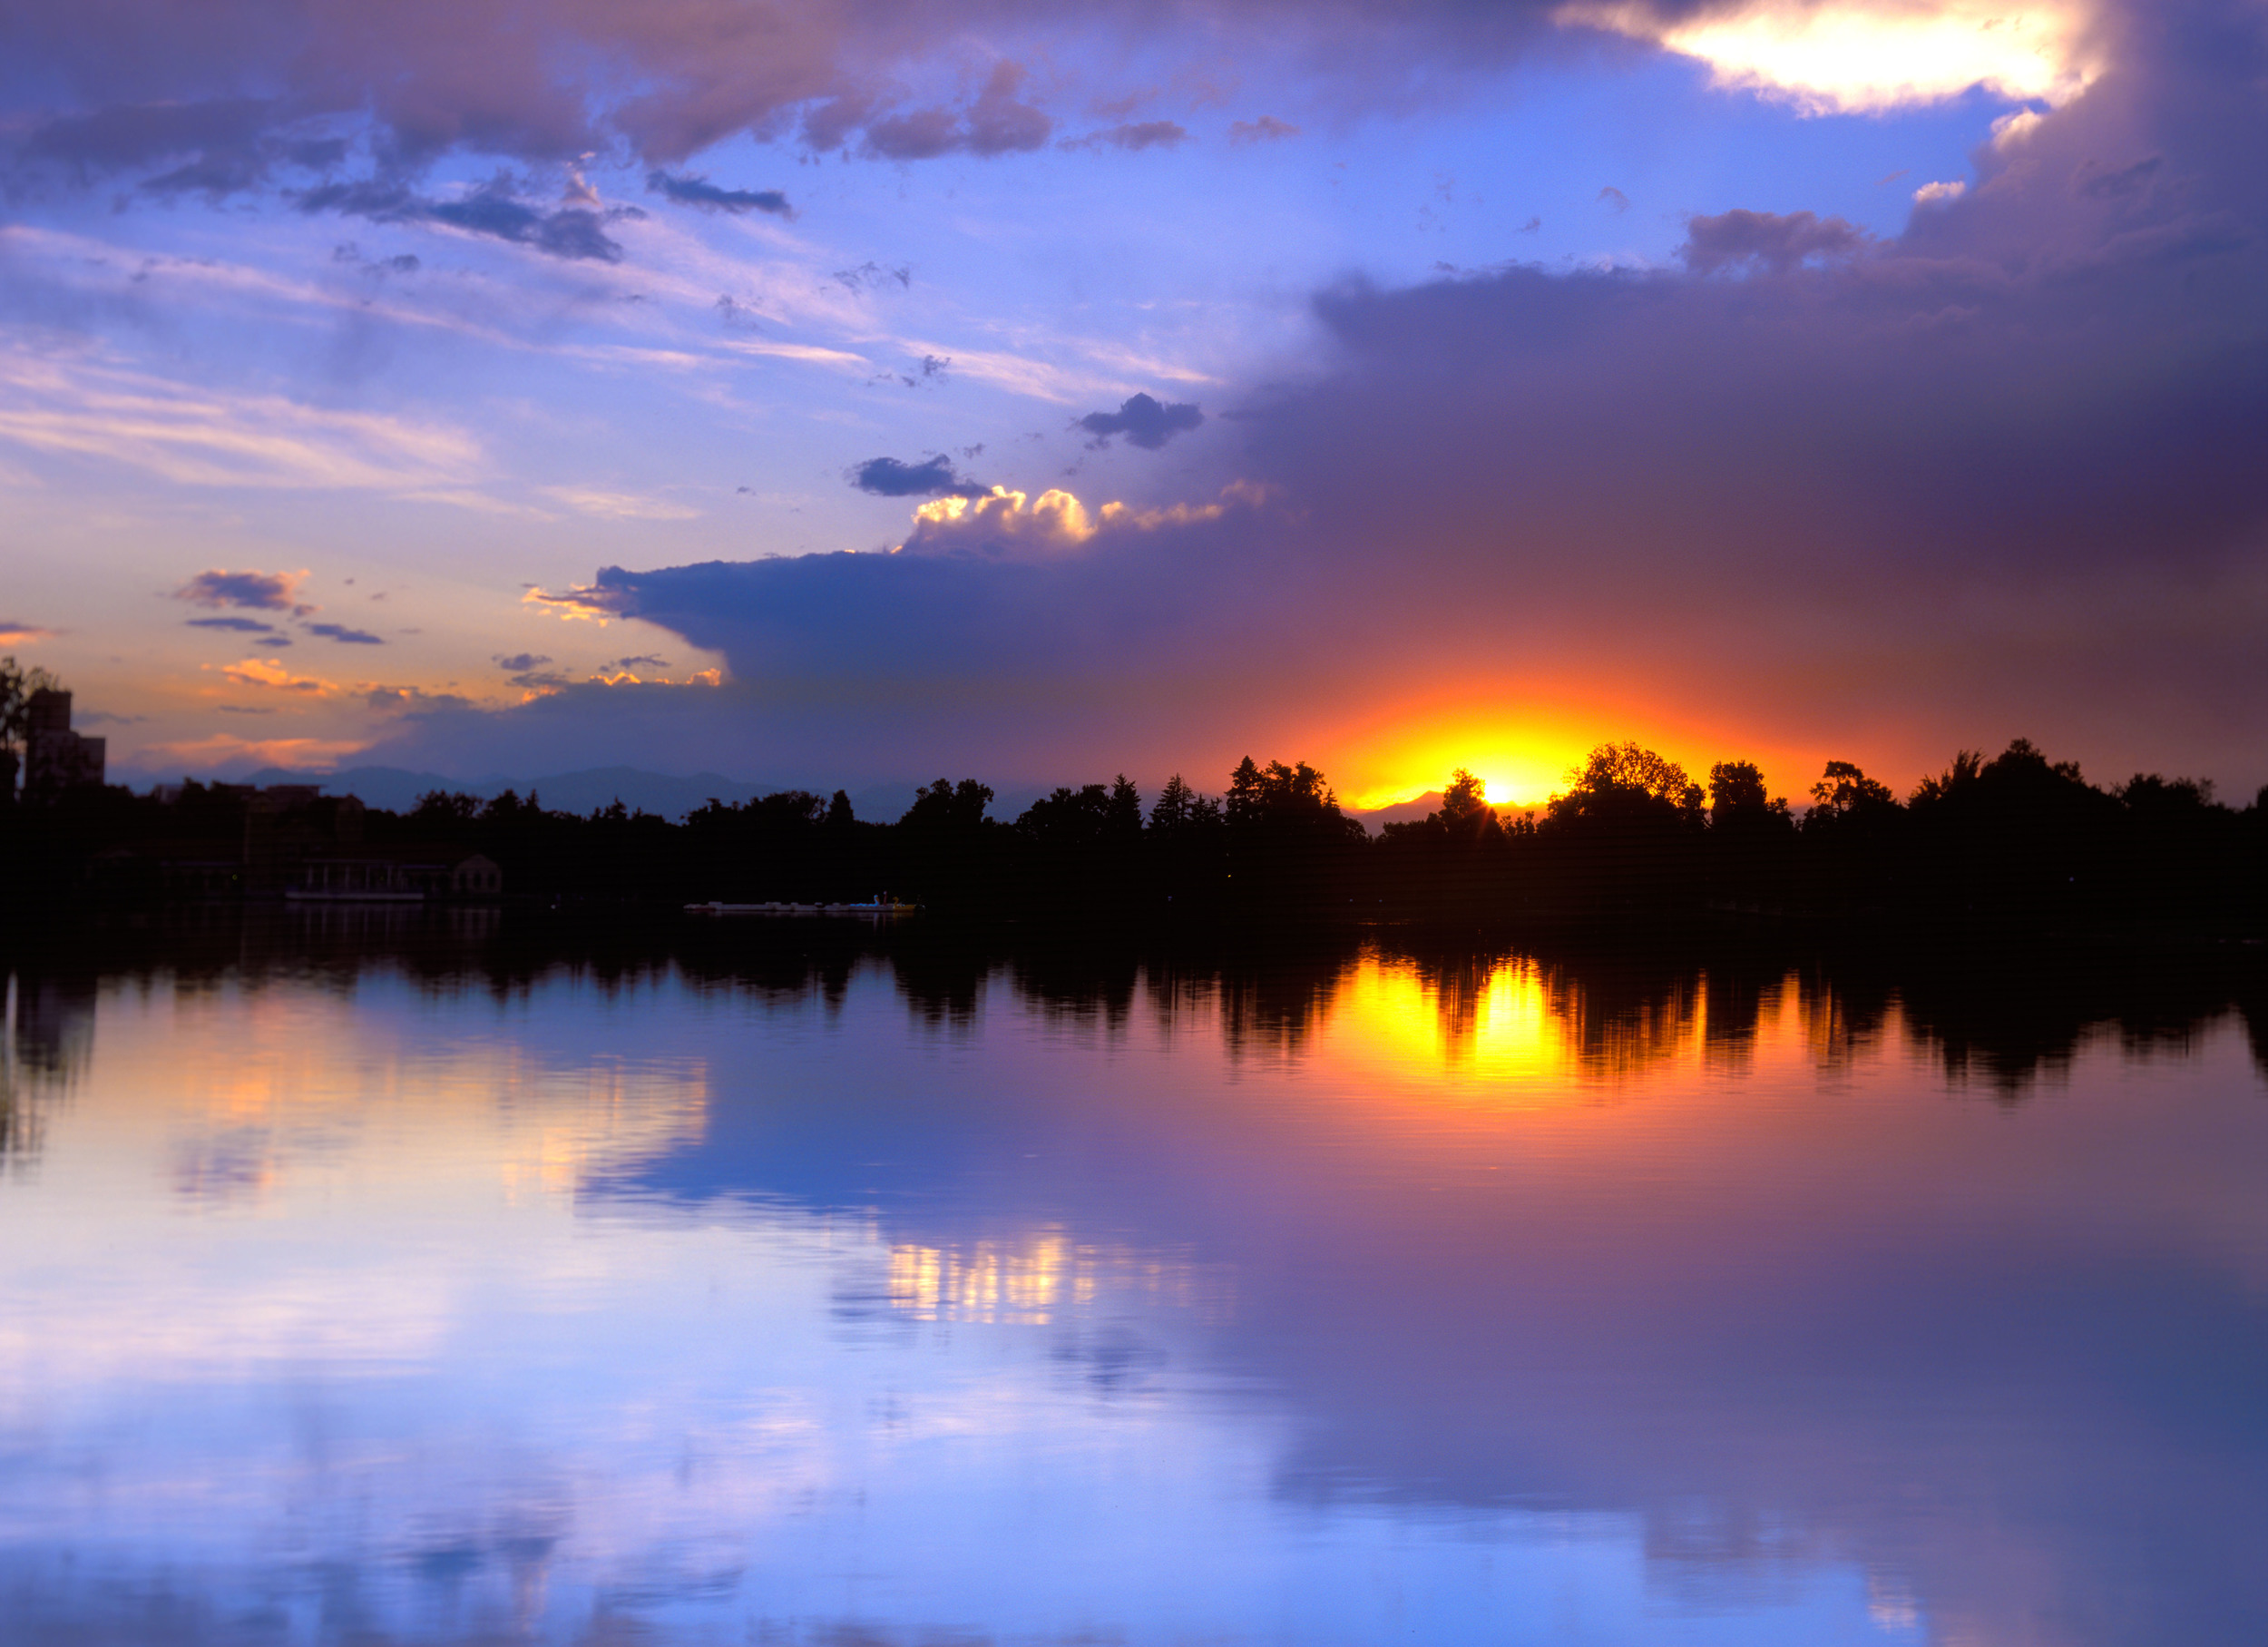 020519 Sunset at City Park Lake.jpg